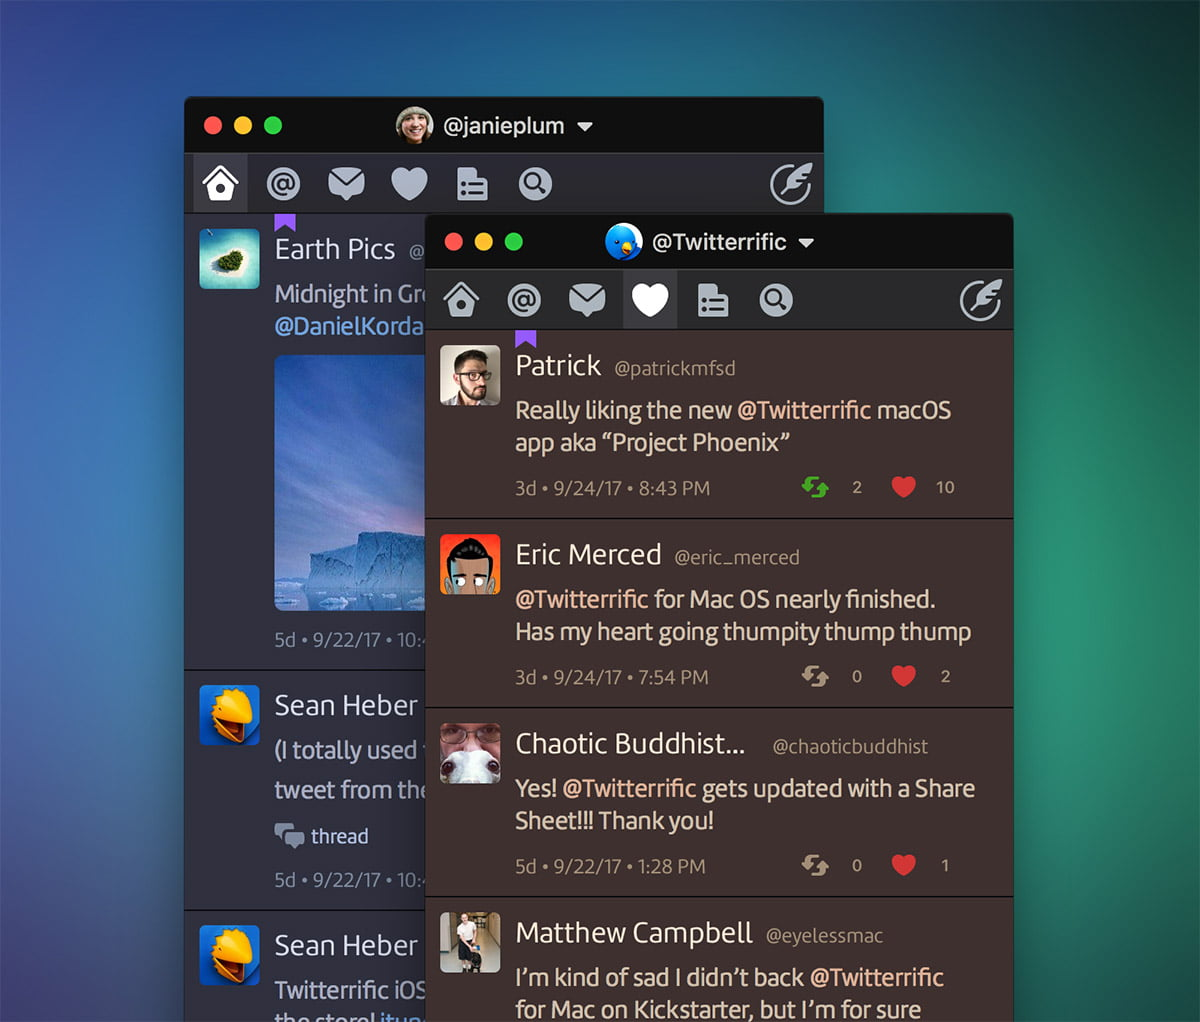 Tweetbot improves its interface and functions in a new update for the Mac operating system